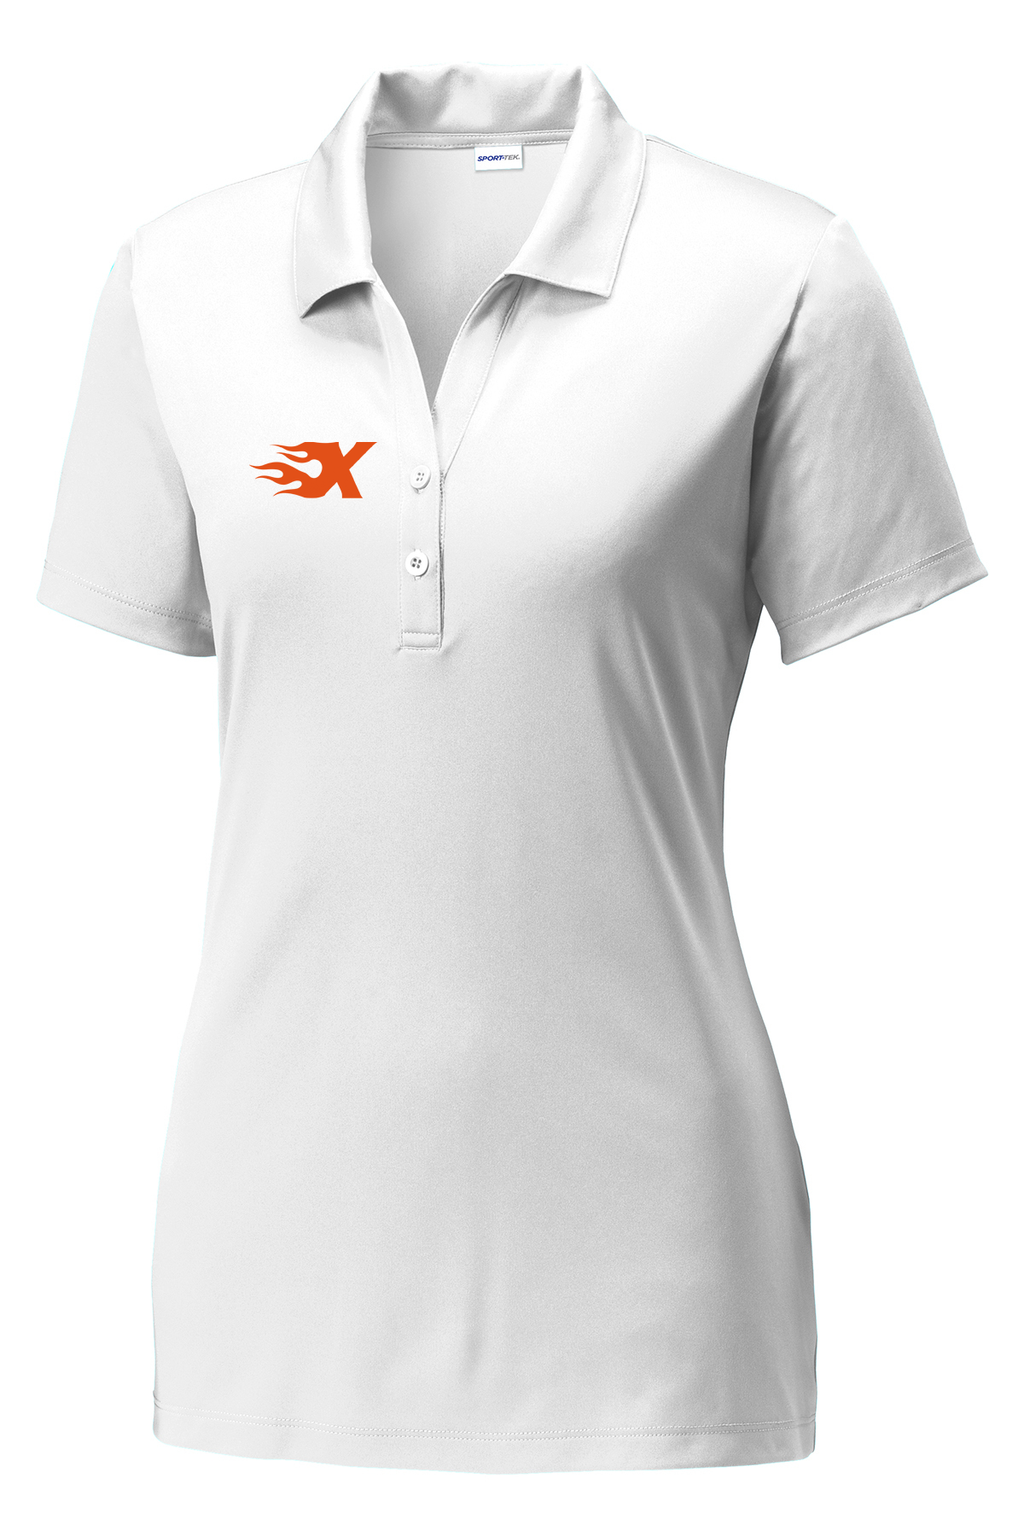 Xtreme Lacrosse Women's White Polo